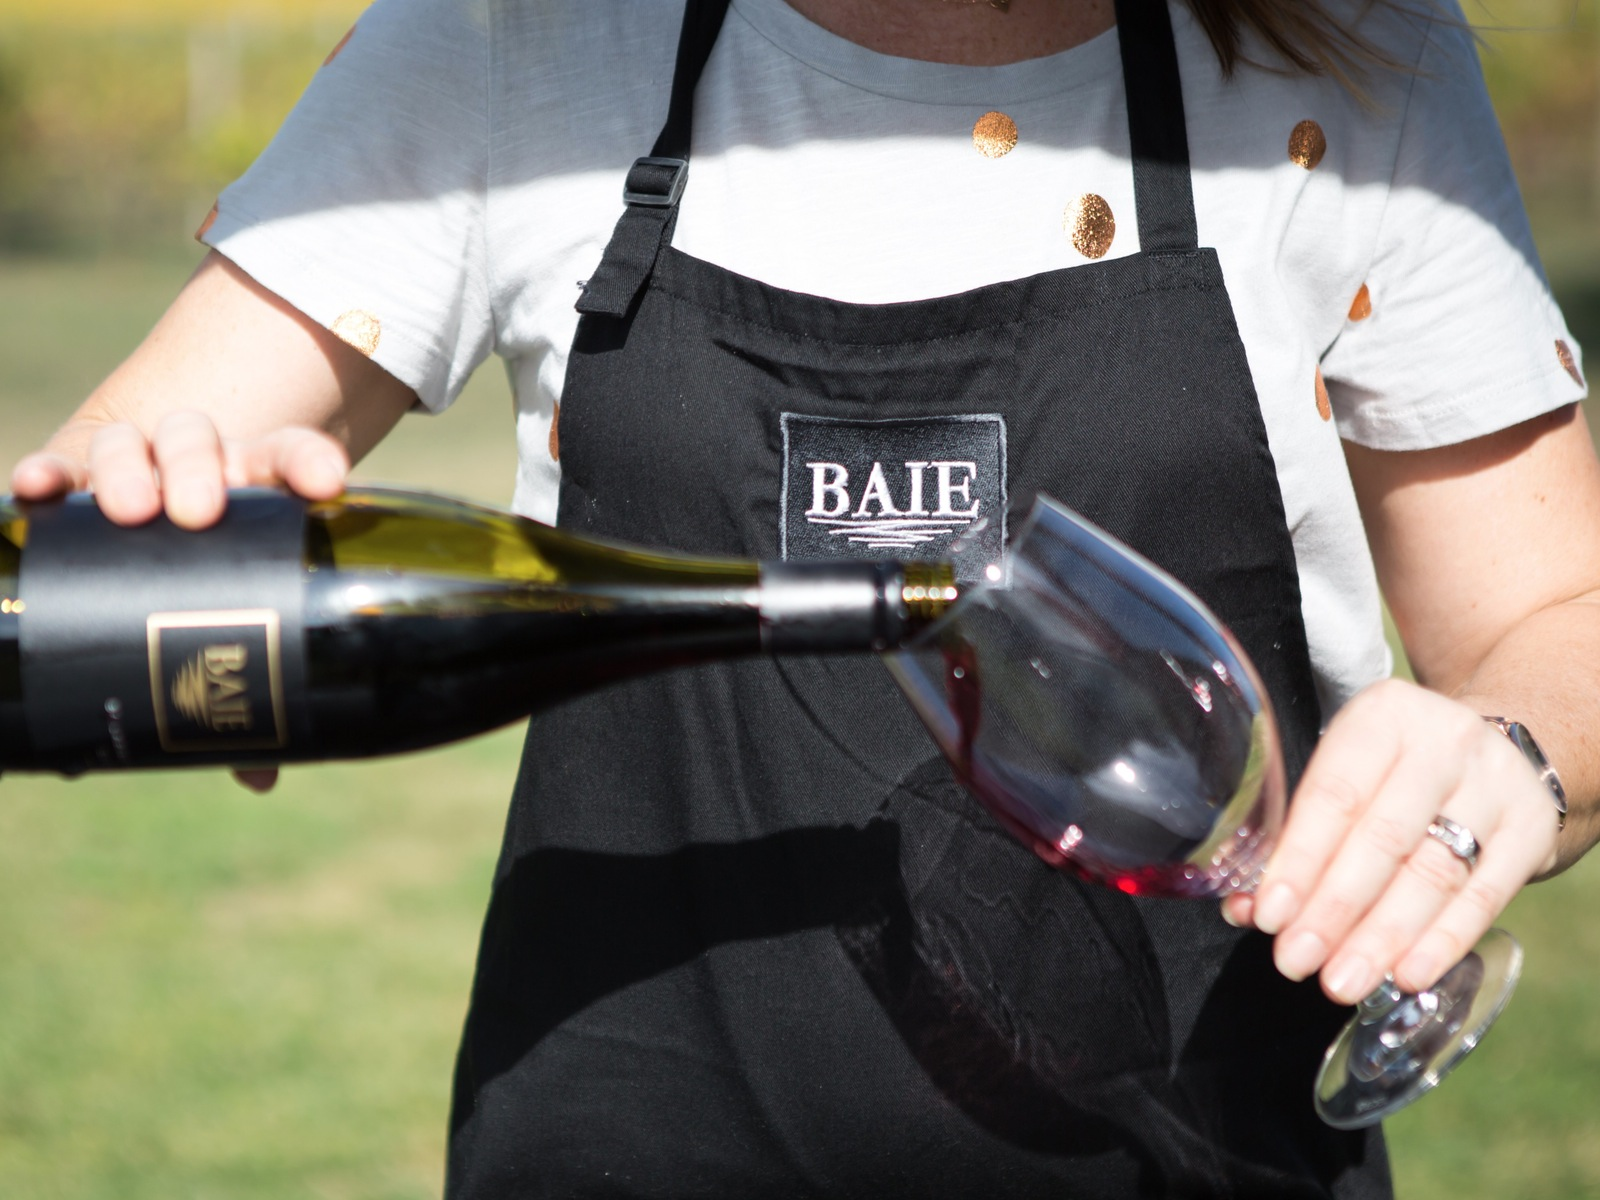 BAIE Wines Pop up wine bar